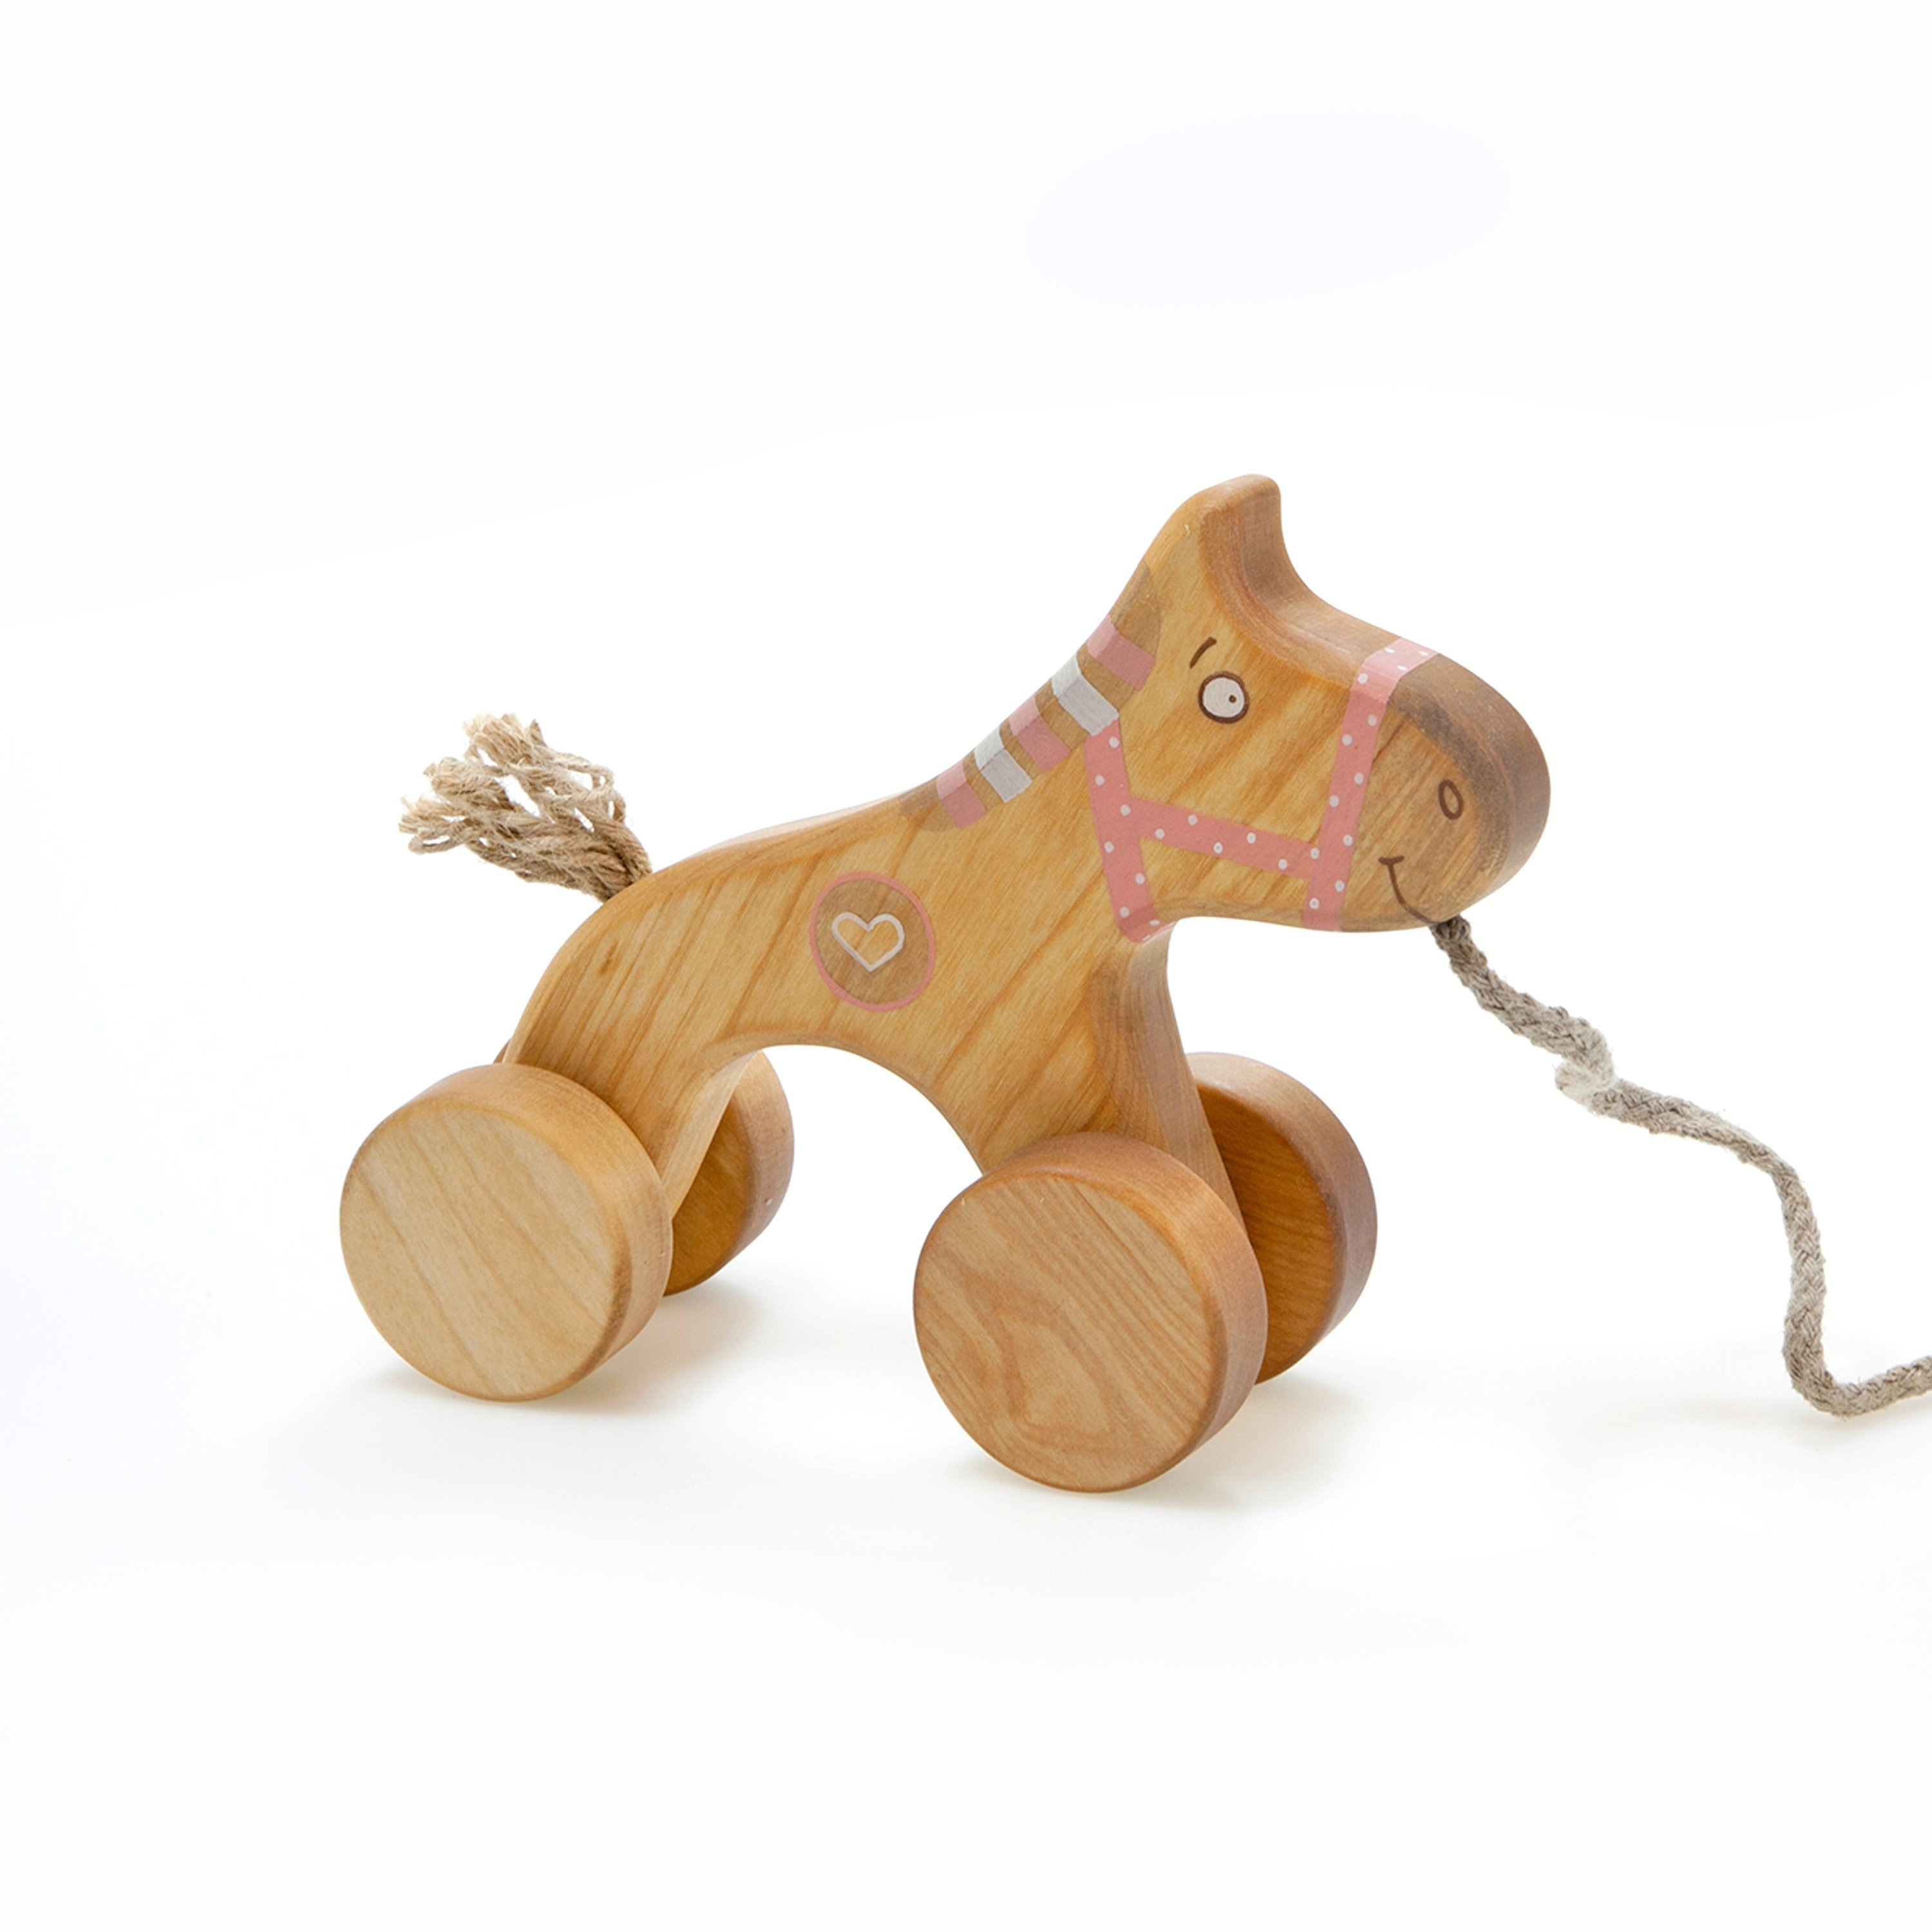 wooden horse toy pull toys for 1 year old pink toy for etsy. Black Bedroom Furniture Sets. Home Design Ideas